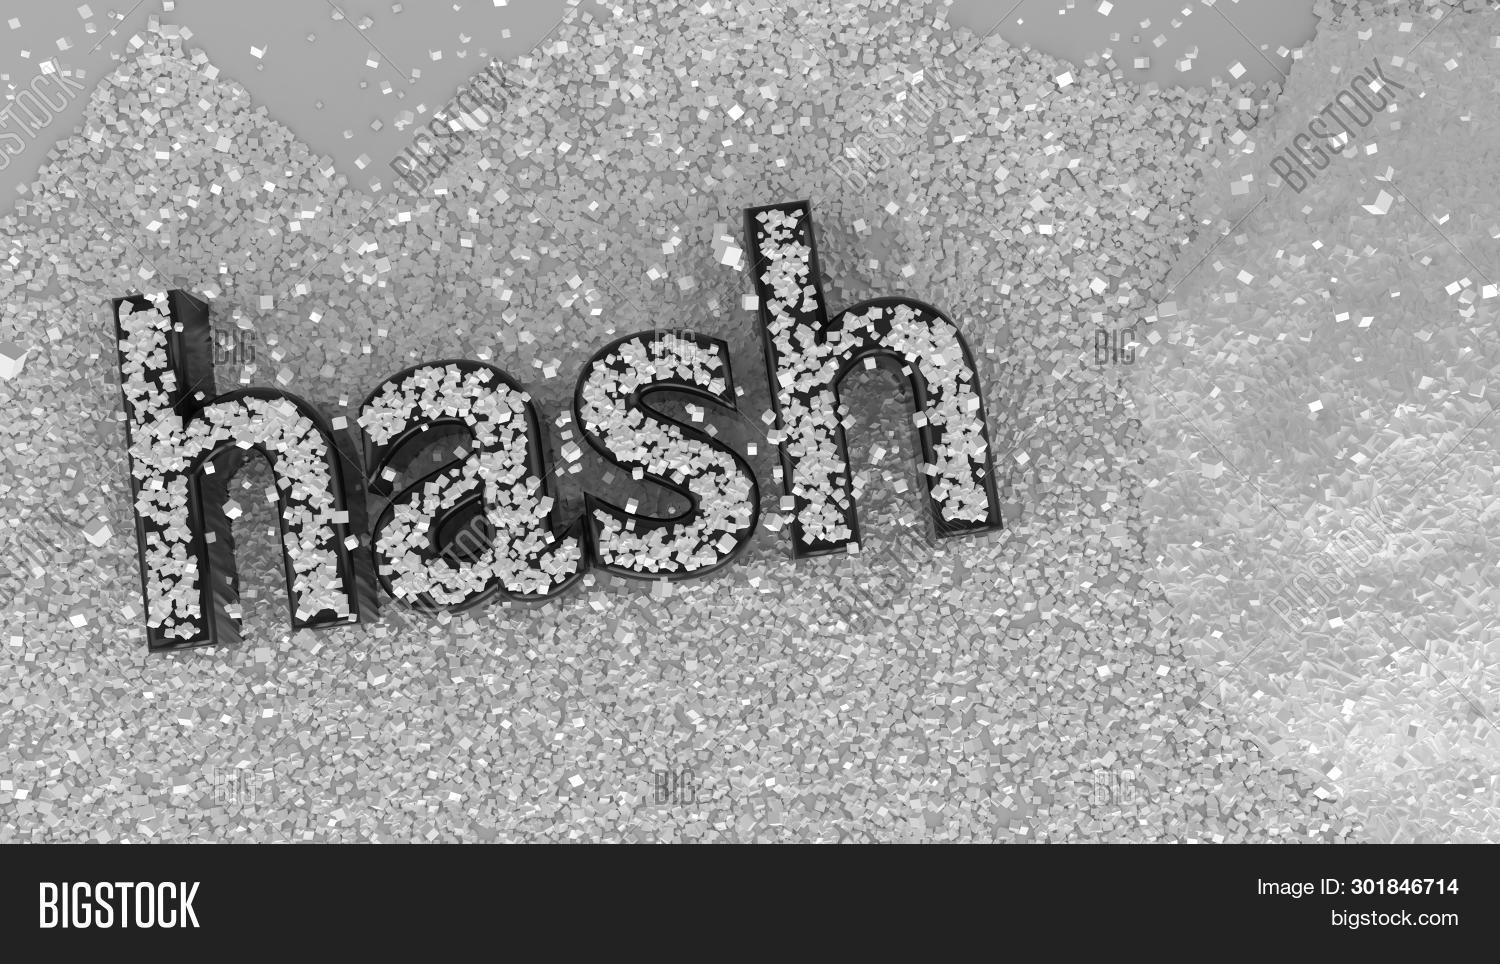 Password Hash Salt Image & Photo (Free Trial) | Bigstock